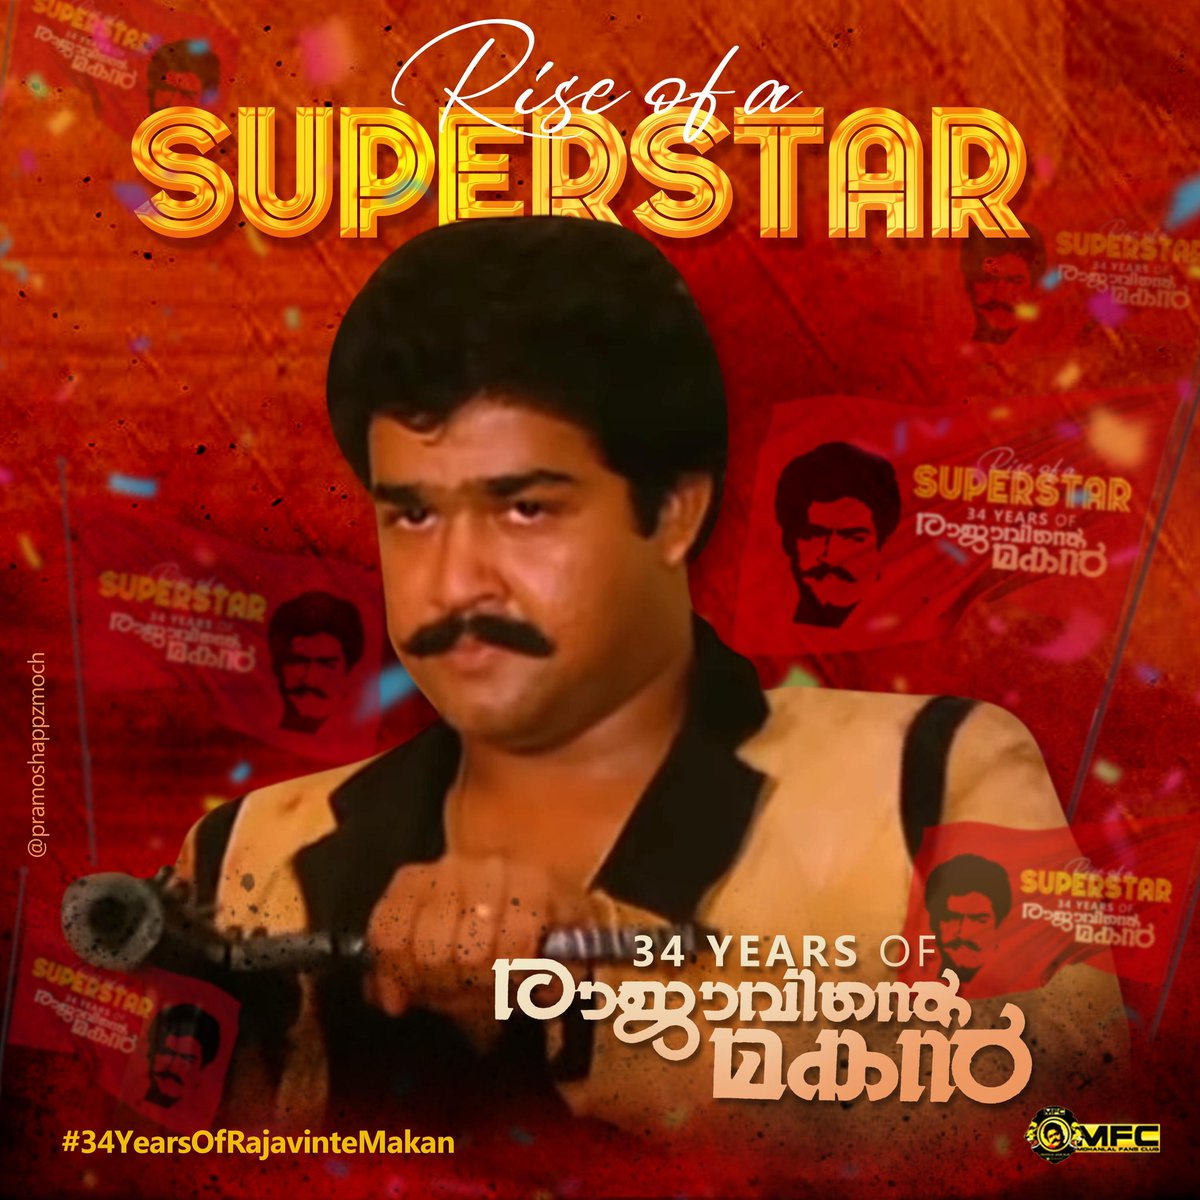 The Rise of A Superstar   #34YearsOfRajavinteMakan<br>http://pic.twitter.com/PCKulDYYW4